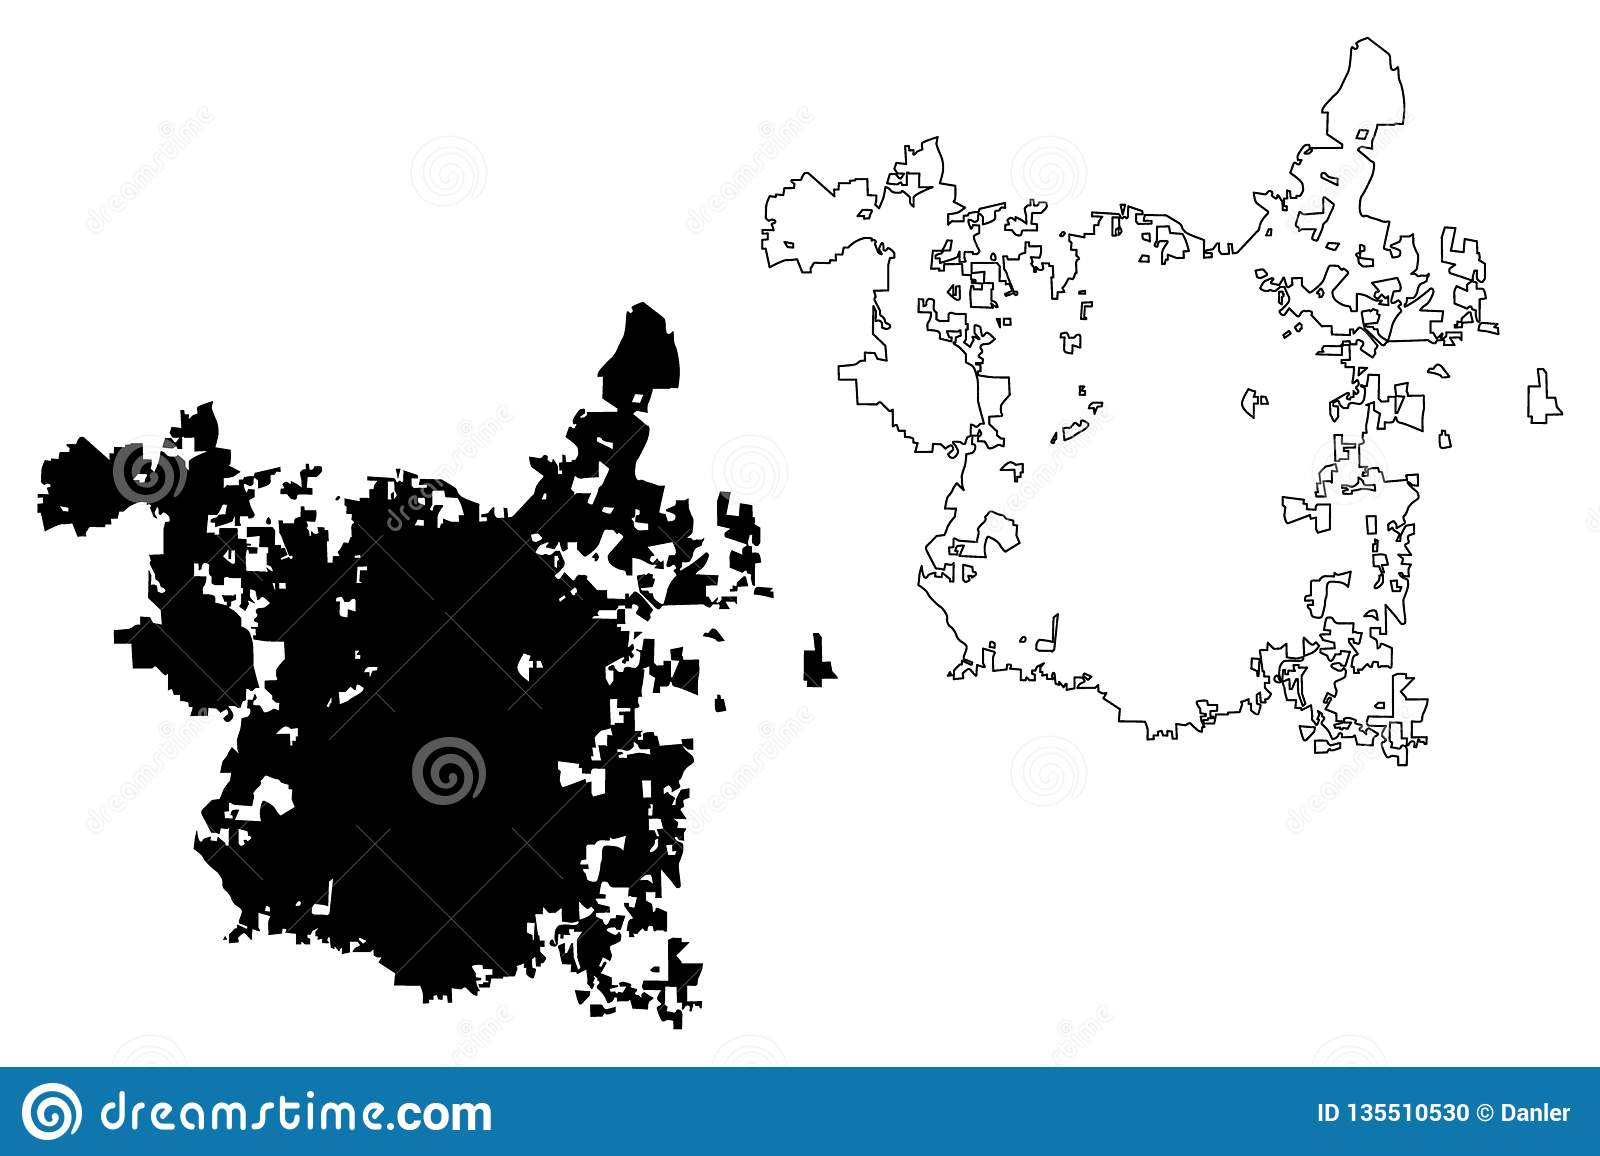 Raleigh City map vector stock vector. Illustration of graphic ...